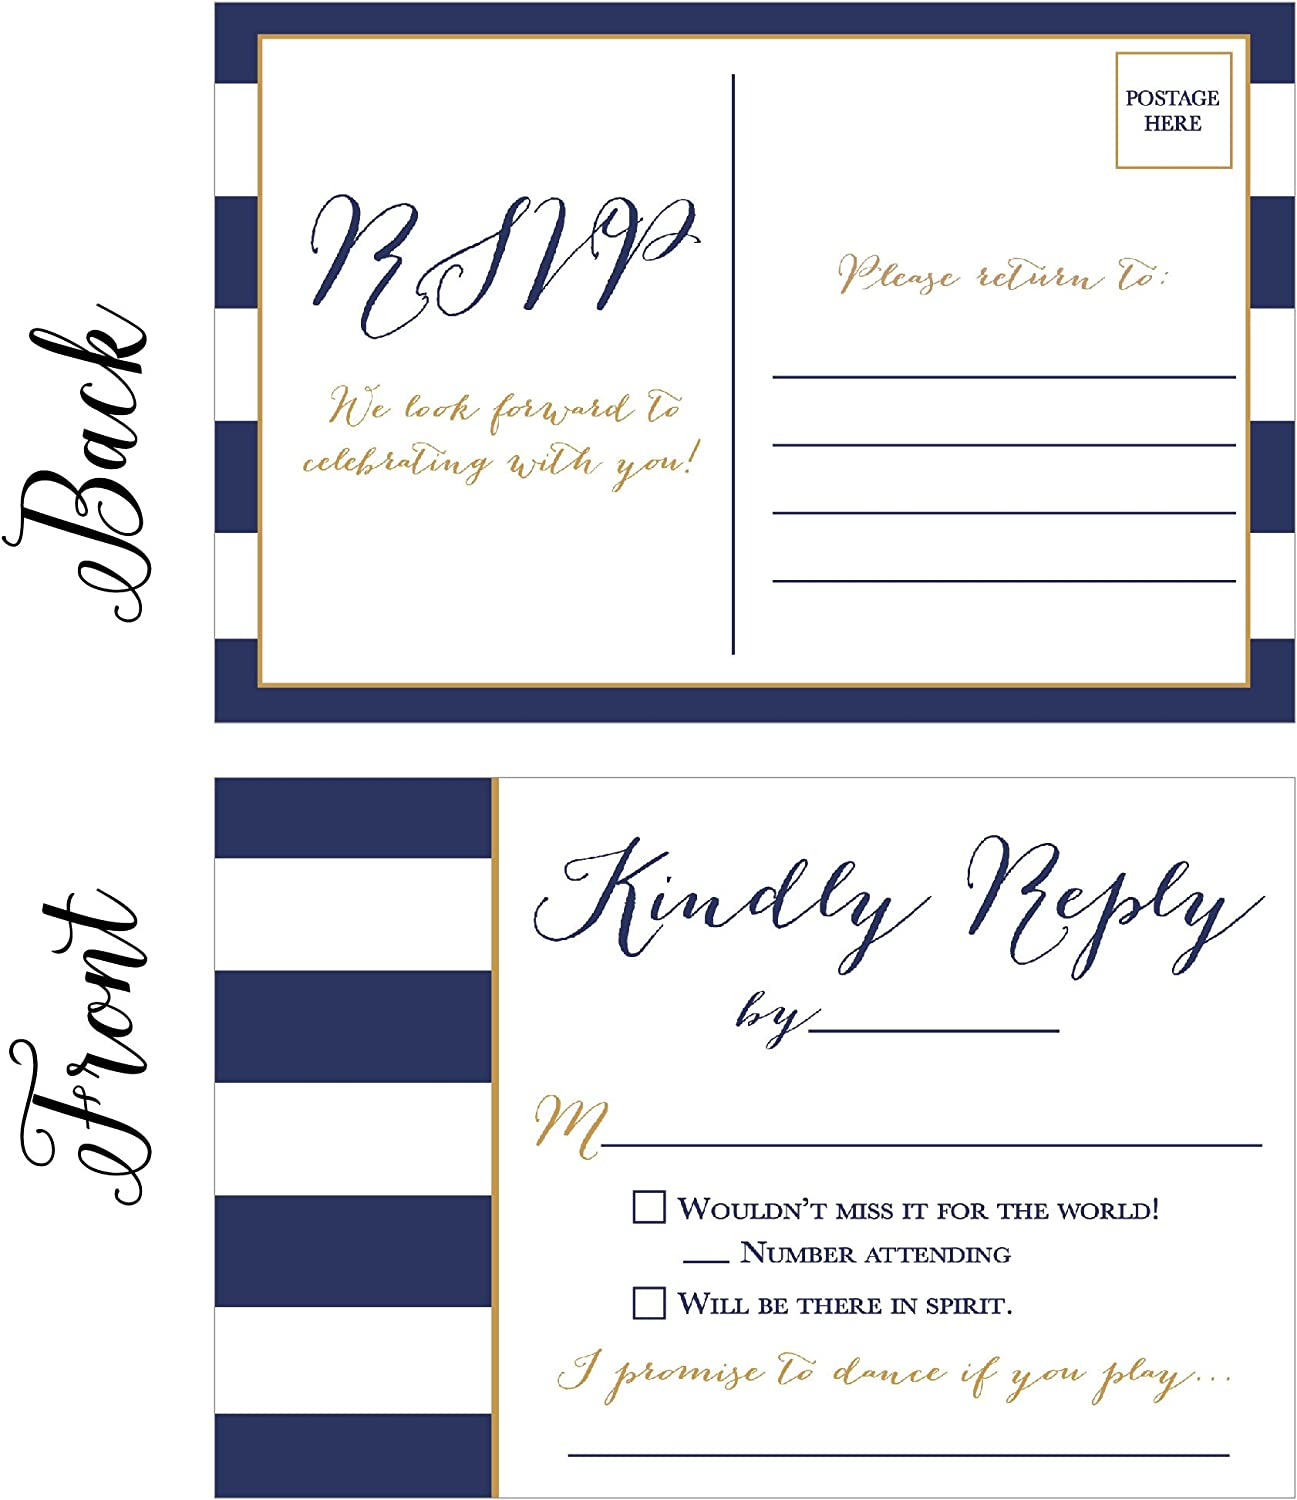 Amazon Com 50 Navy Rsvp Cards Rsvp Postcards No Envelopes Needed Response Card Blank Rsvp Reply Rsvp For Wedding Rehearsal Dinner Baby Shower Bridal Birthday Engagement Bachelorette Party Invitations Office Products